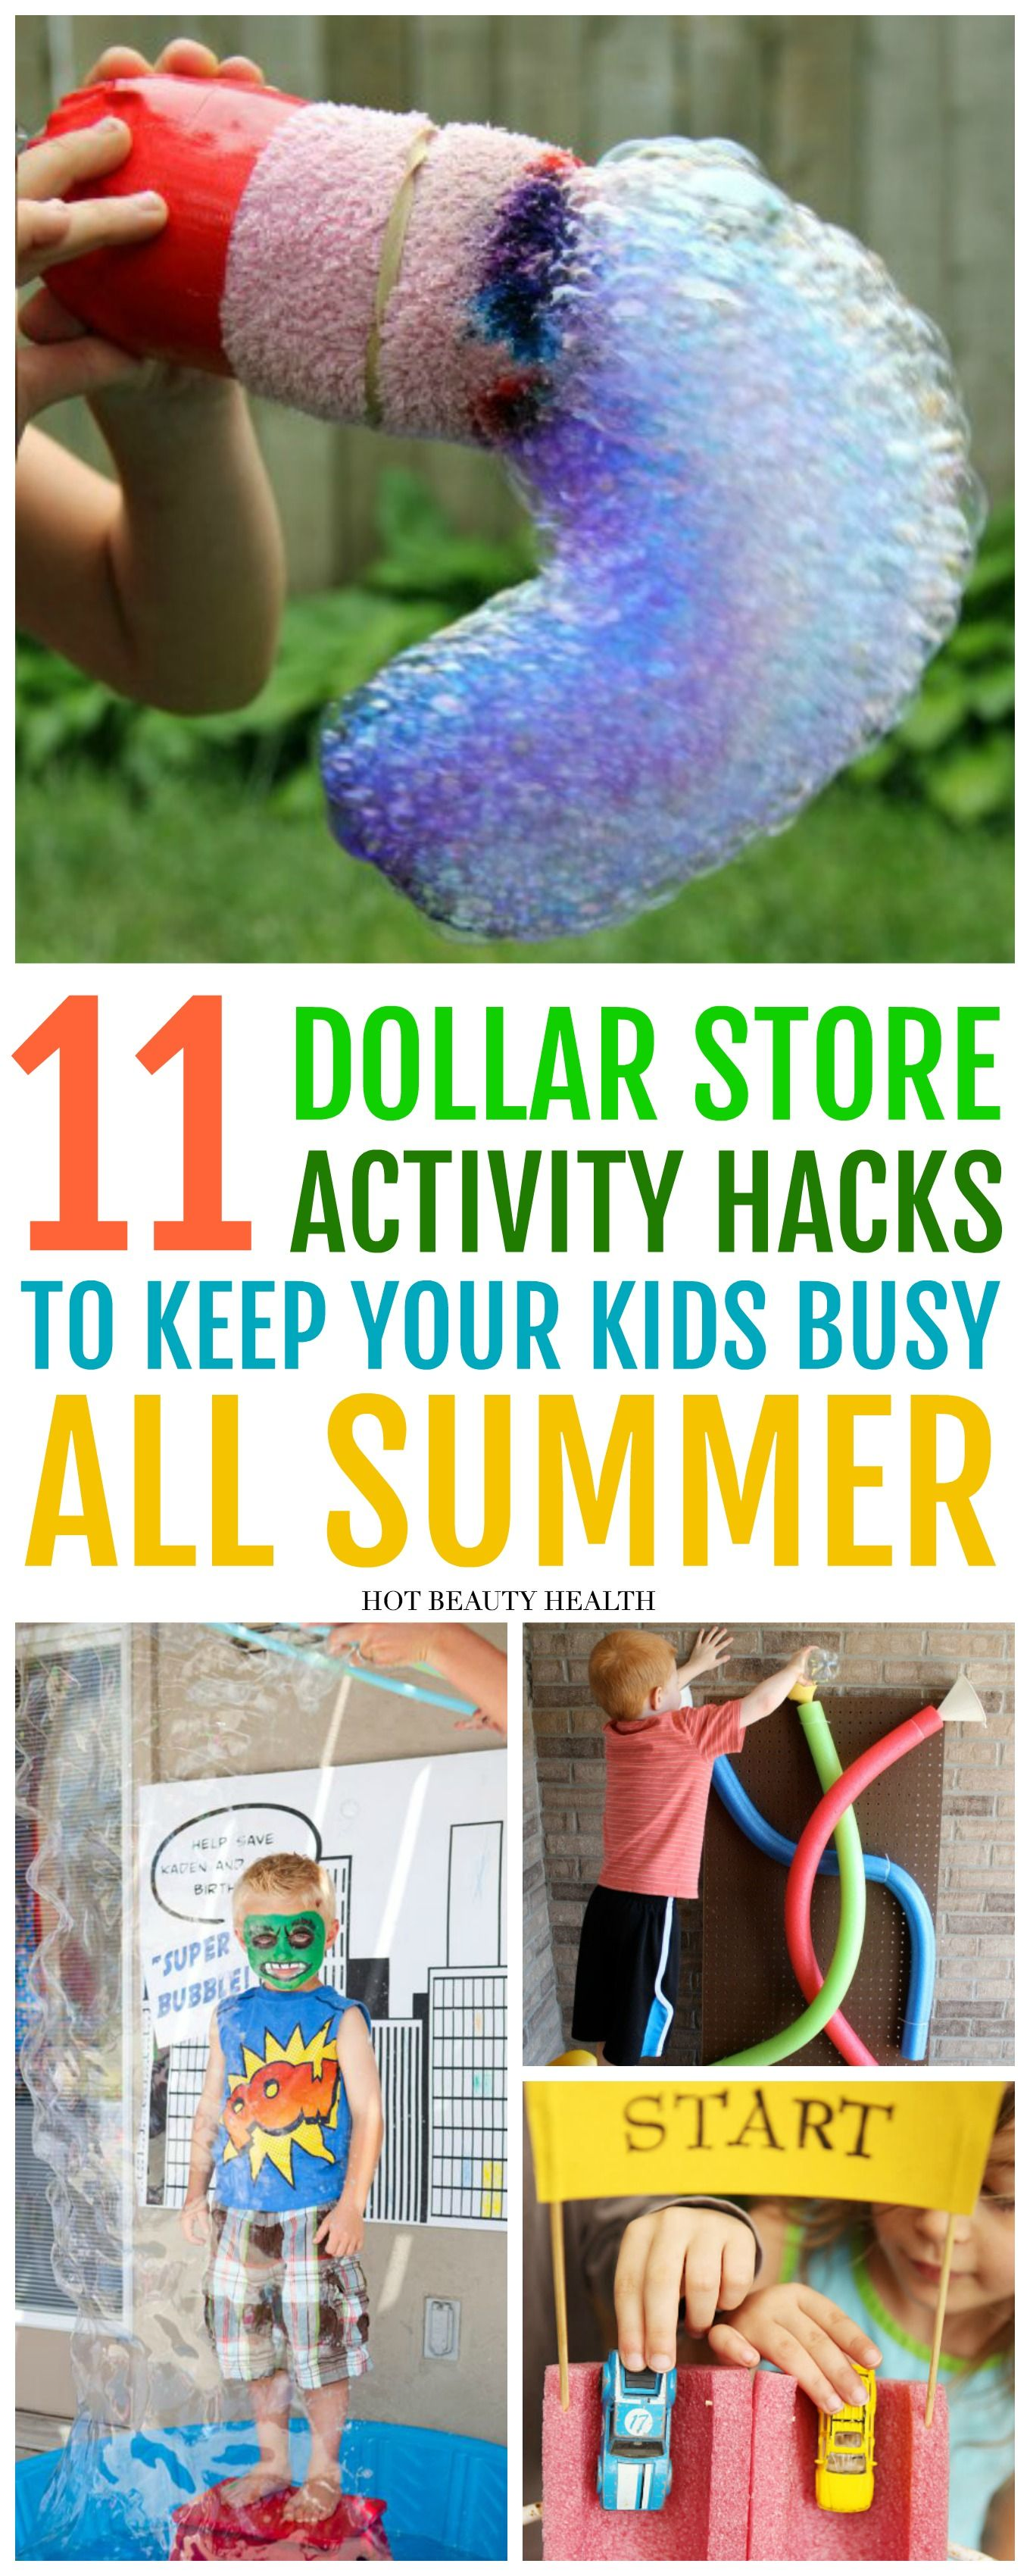 11 Fun Activities to DIY This Summer From The Dollar Store - Hot Beauty Health